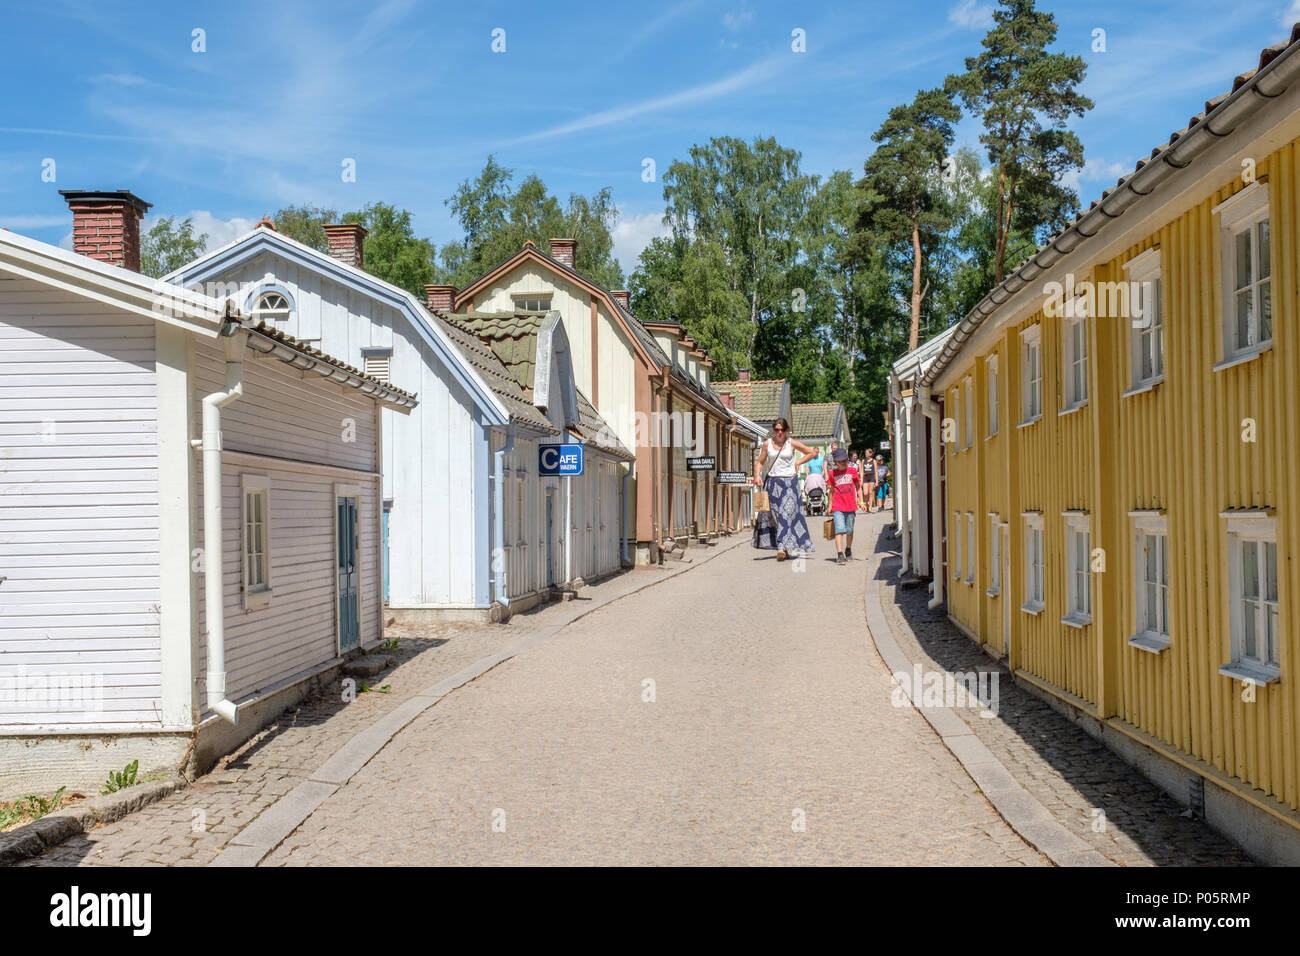 Miniature city in Astrid Lindgrens world. This is a popular theme park in Sweden based on the fairy tales and stories by Astrid Lindgren. - Stock Image